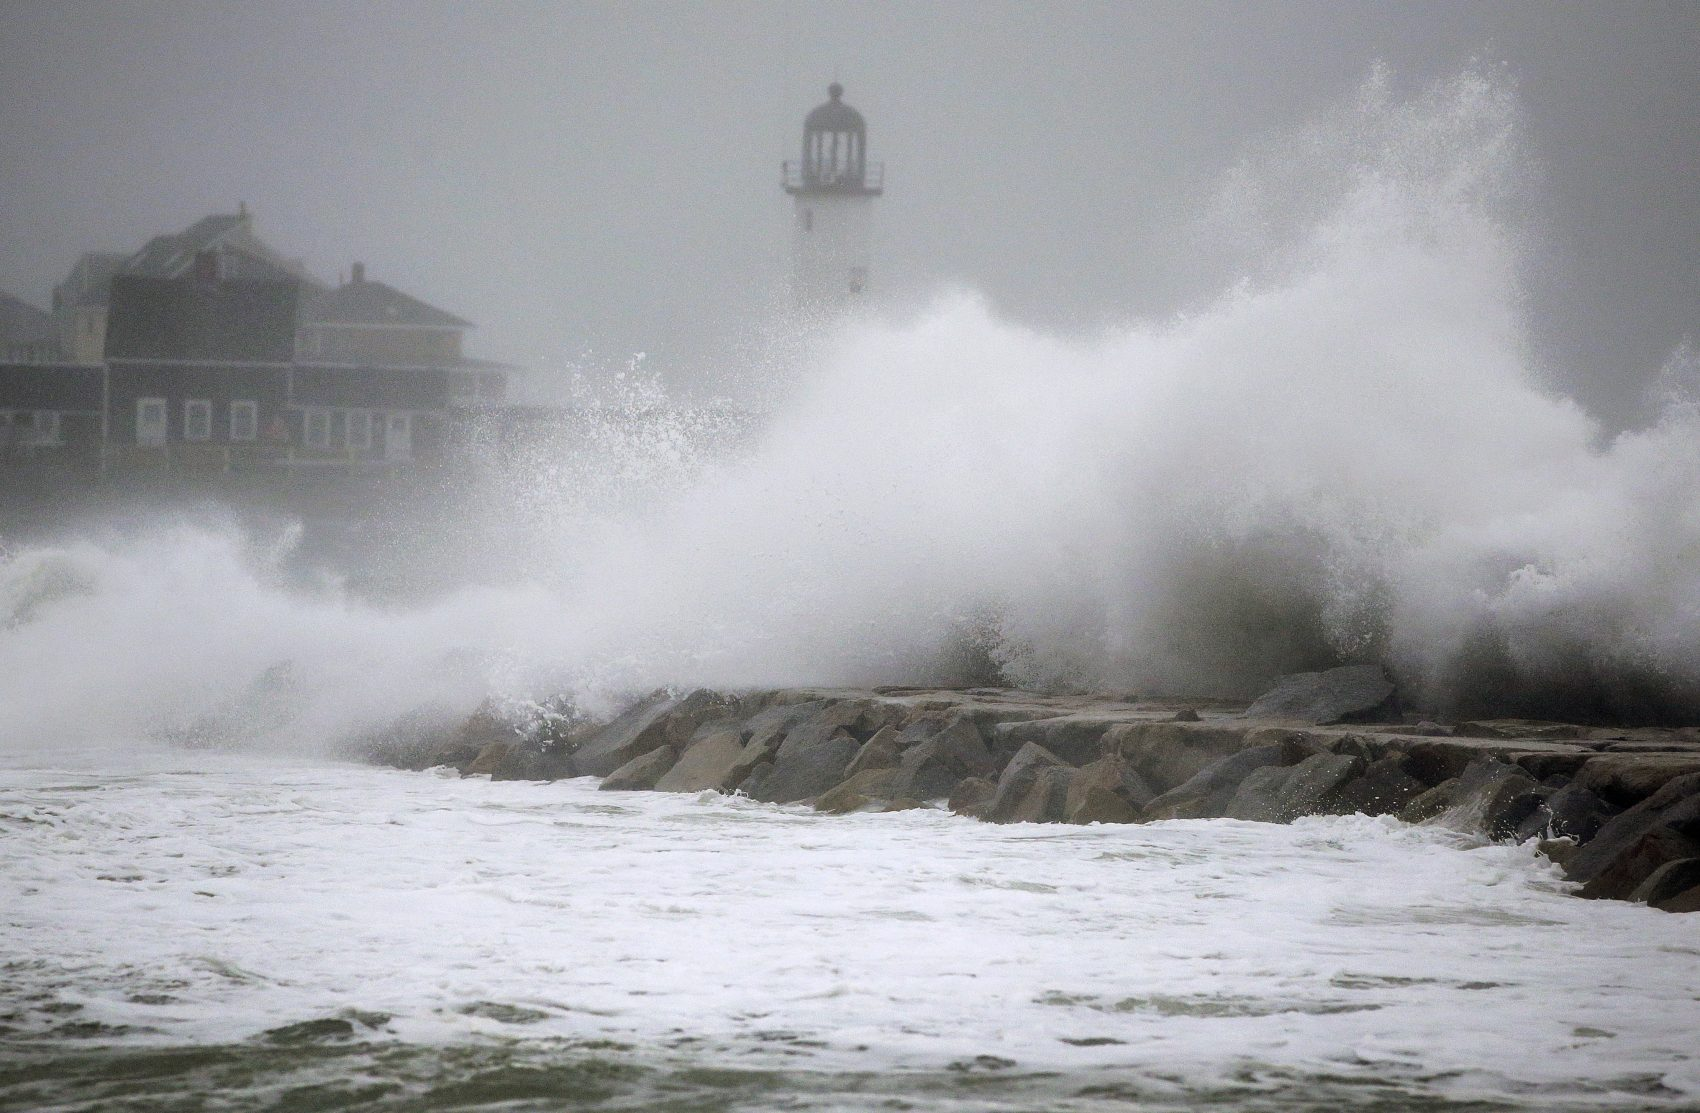 Waves crash against a seawall near the Scituate Lighthouse on Friday in Scituate. (Steven Senne/AP)